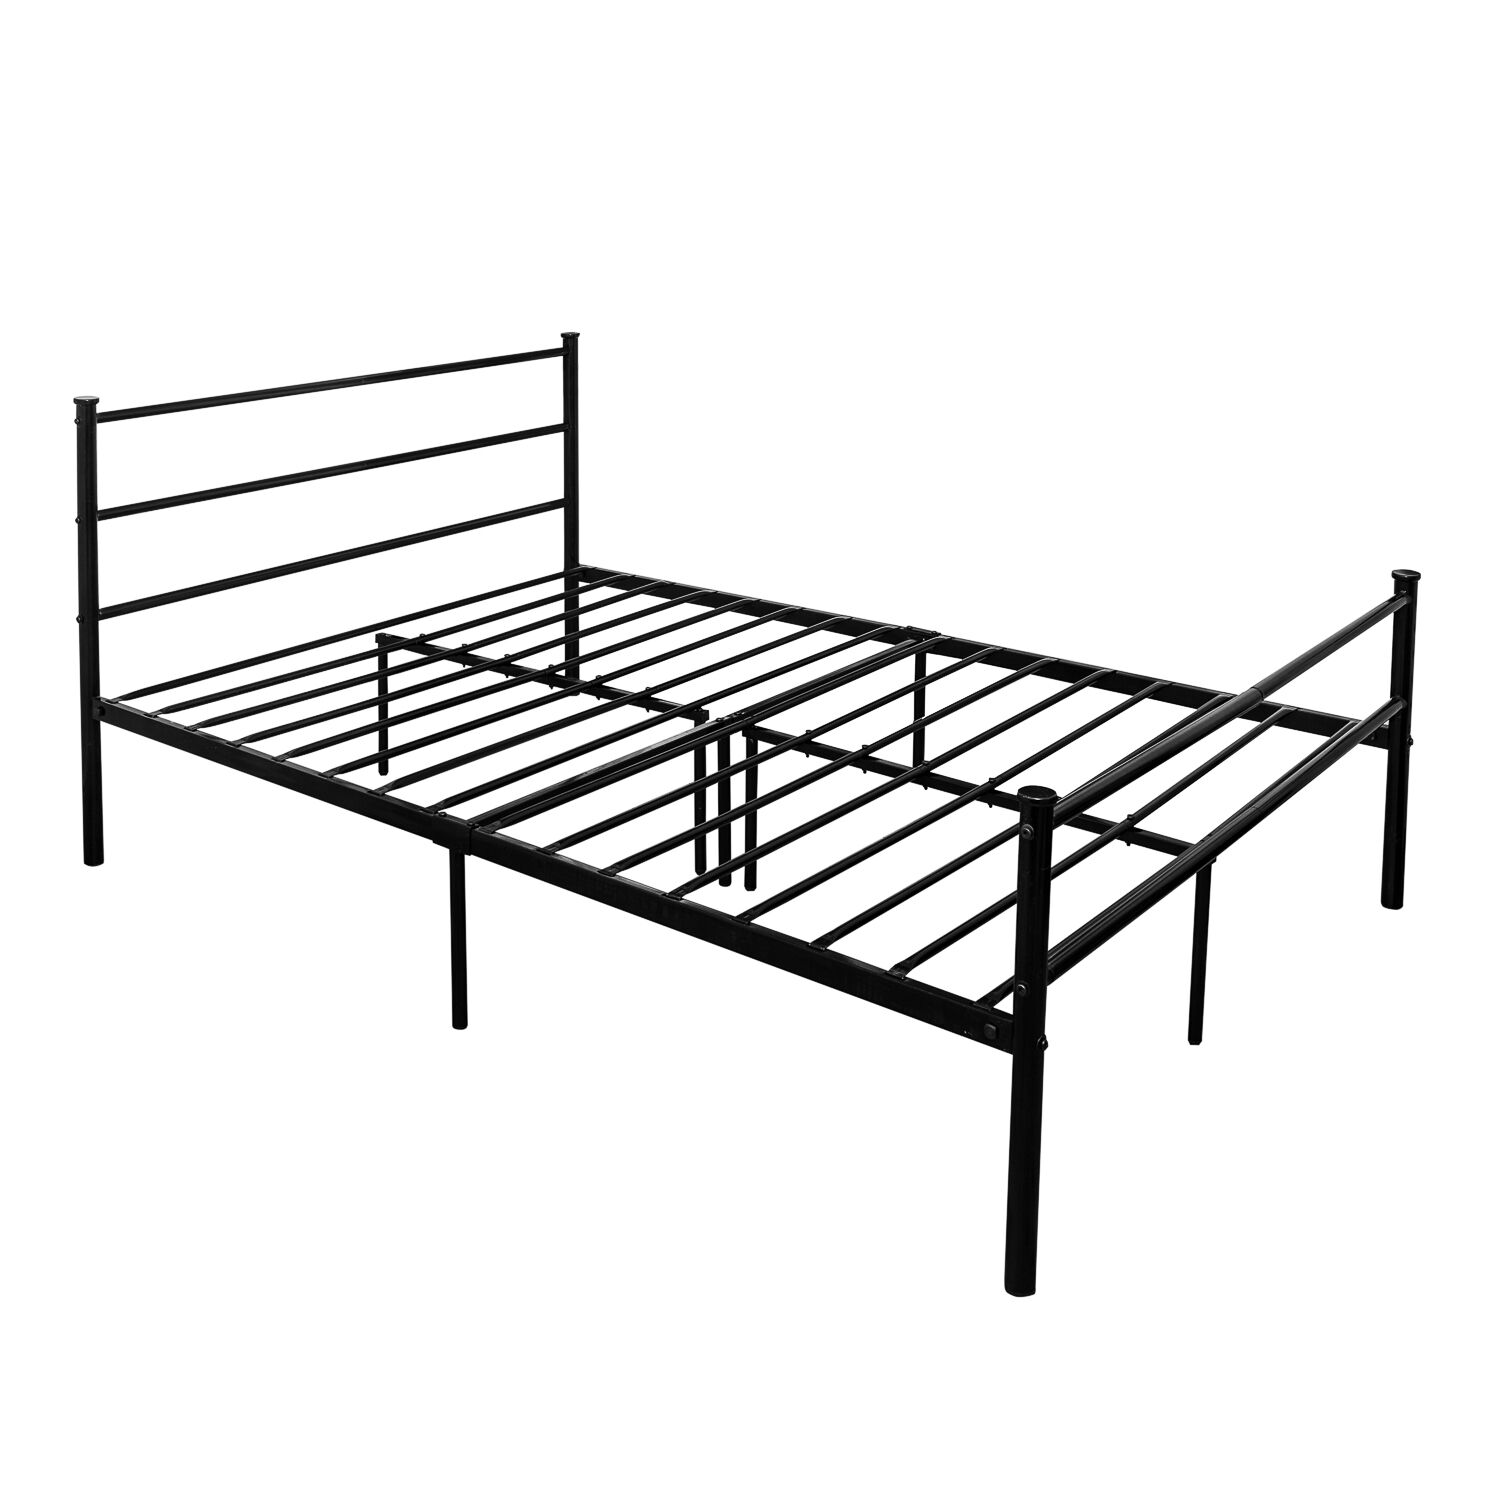 Single Metal Sofa Bed Frame In Black With Side Rail